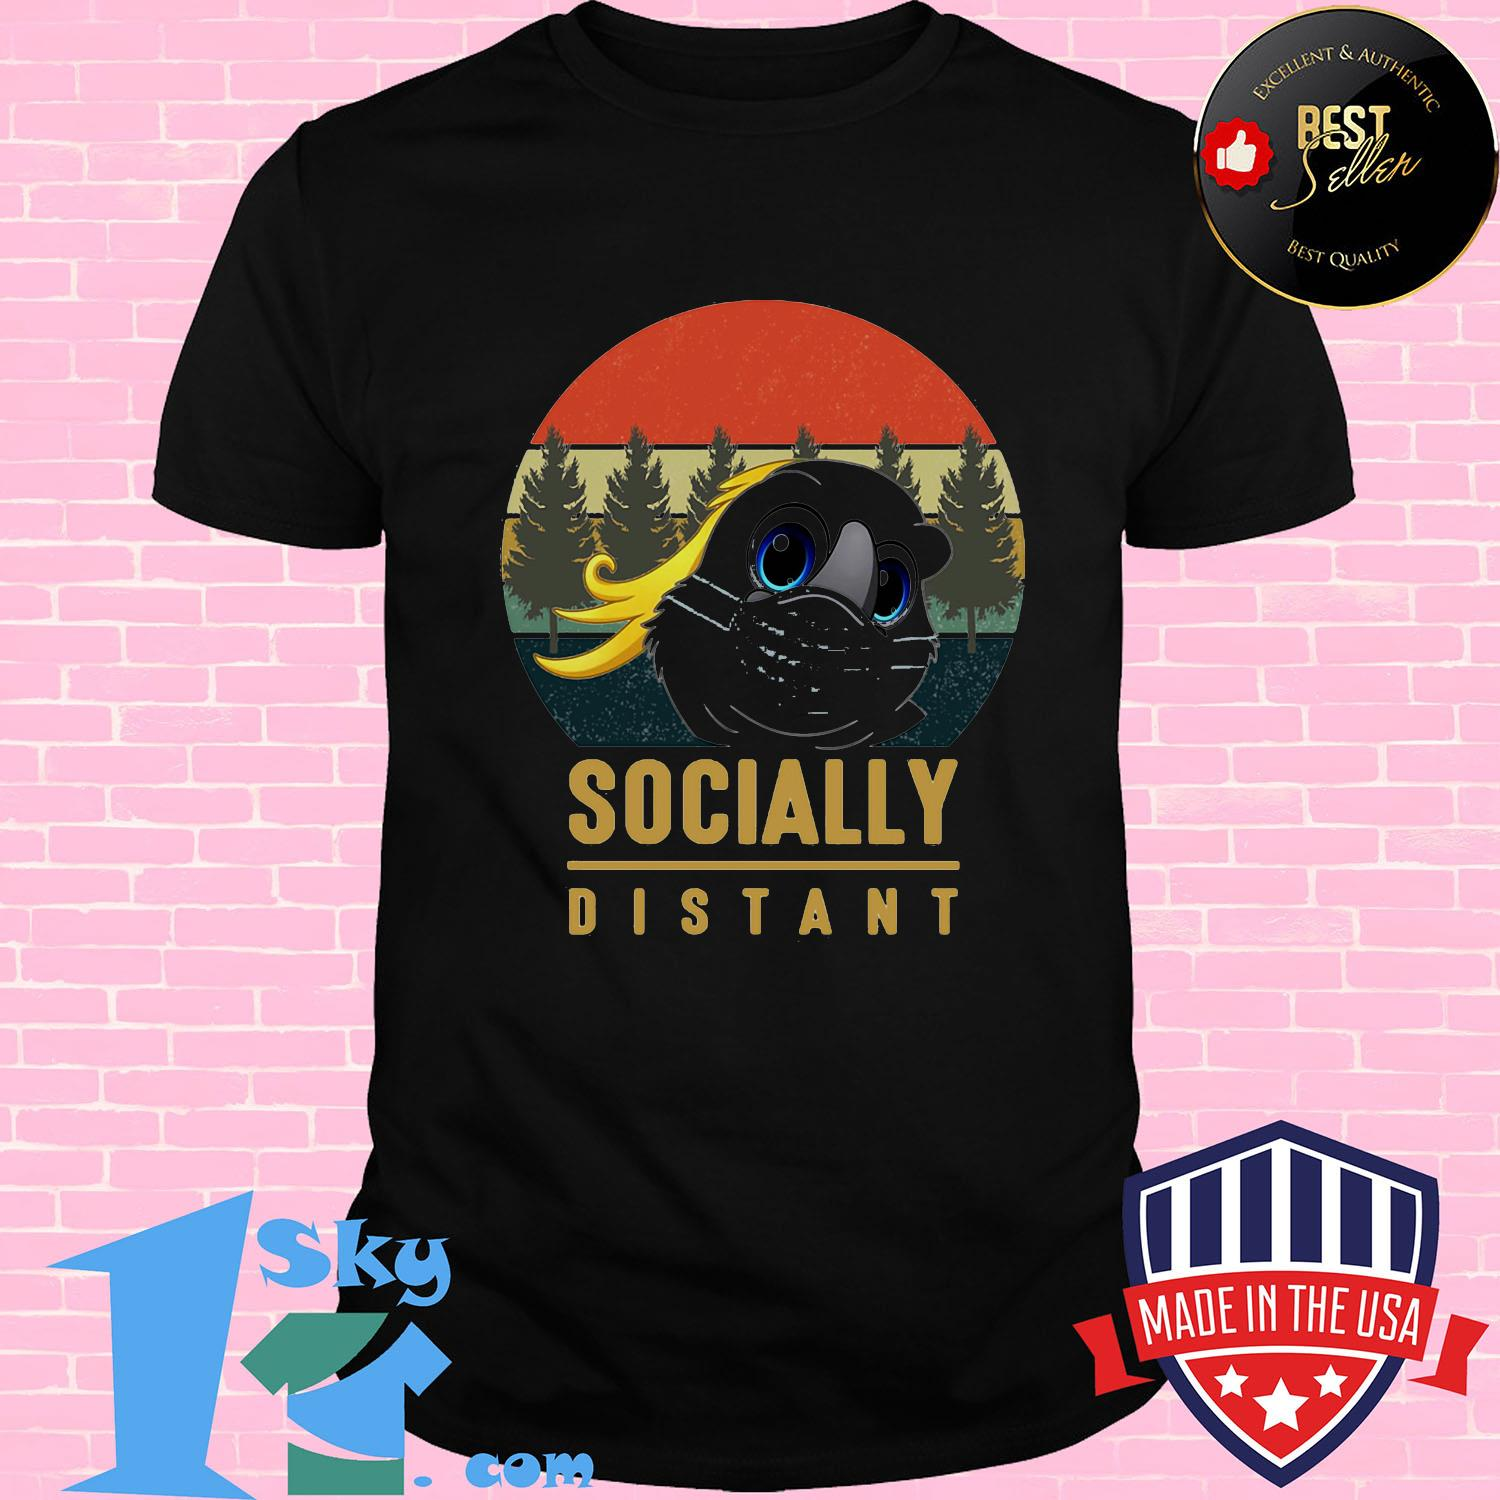 c77f0bf6 social distant bird mask vintage shirt unisex shirt - Shop trending - We offer all trend shirts - 1SkyTee